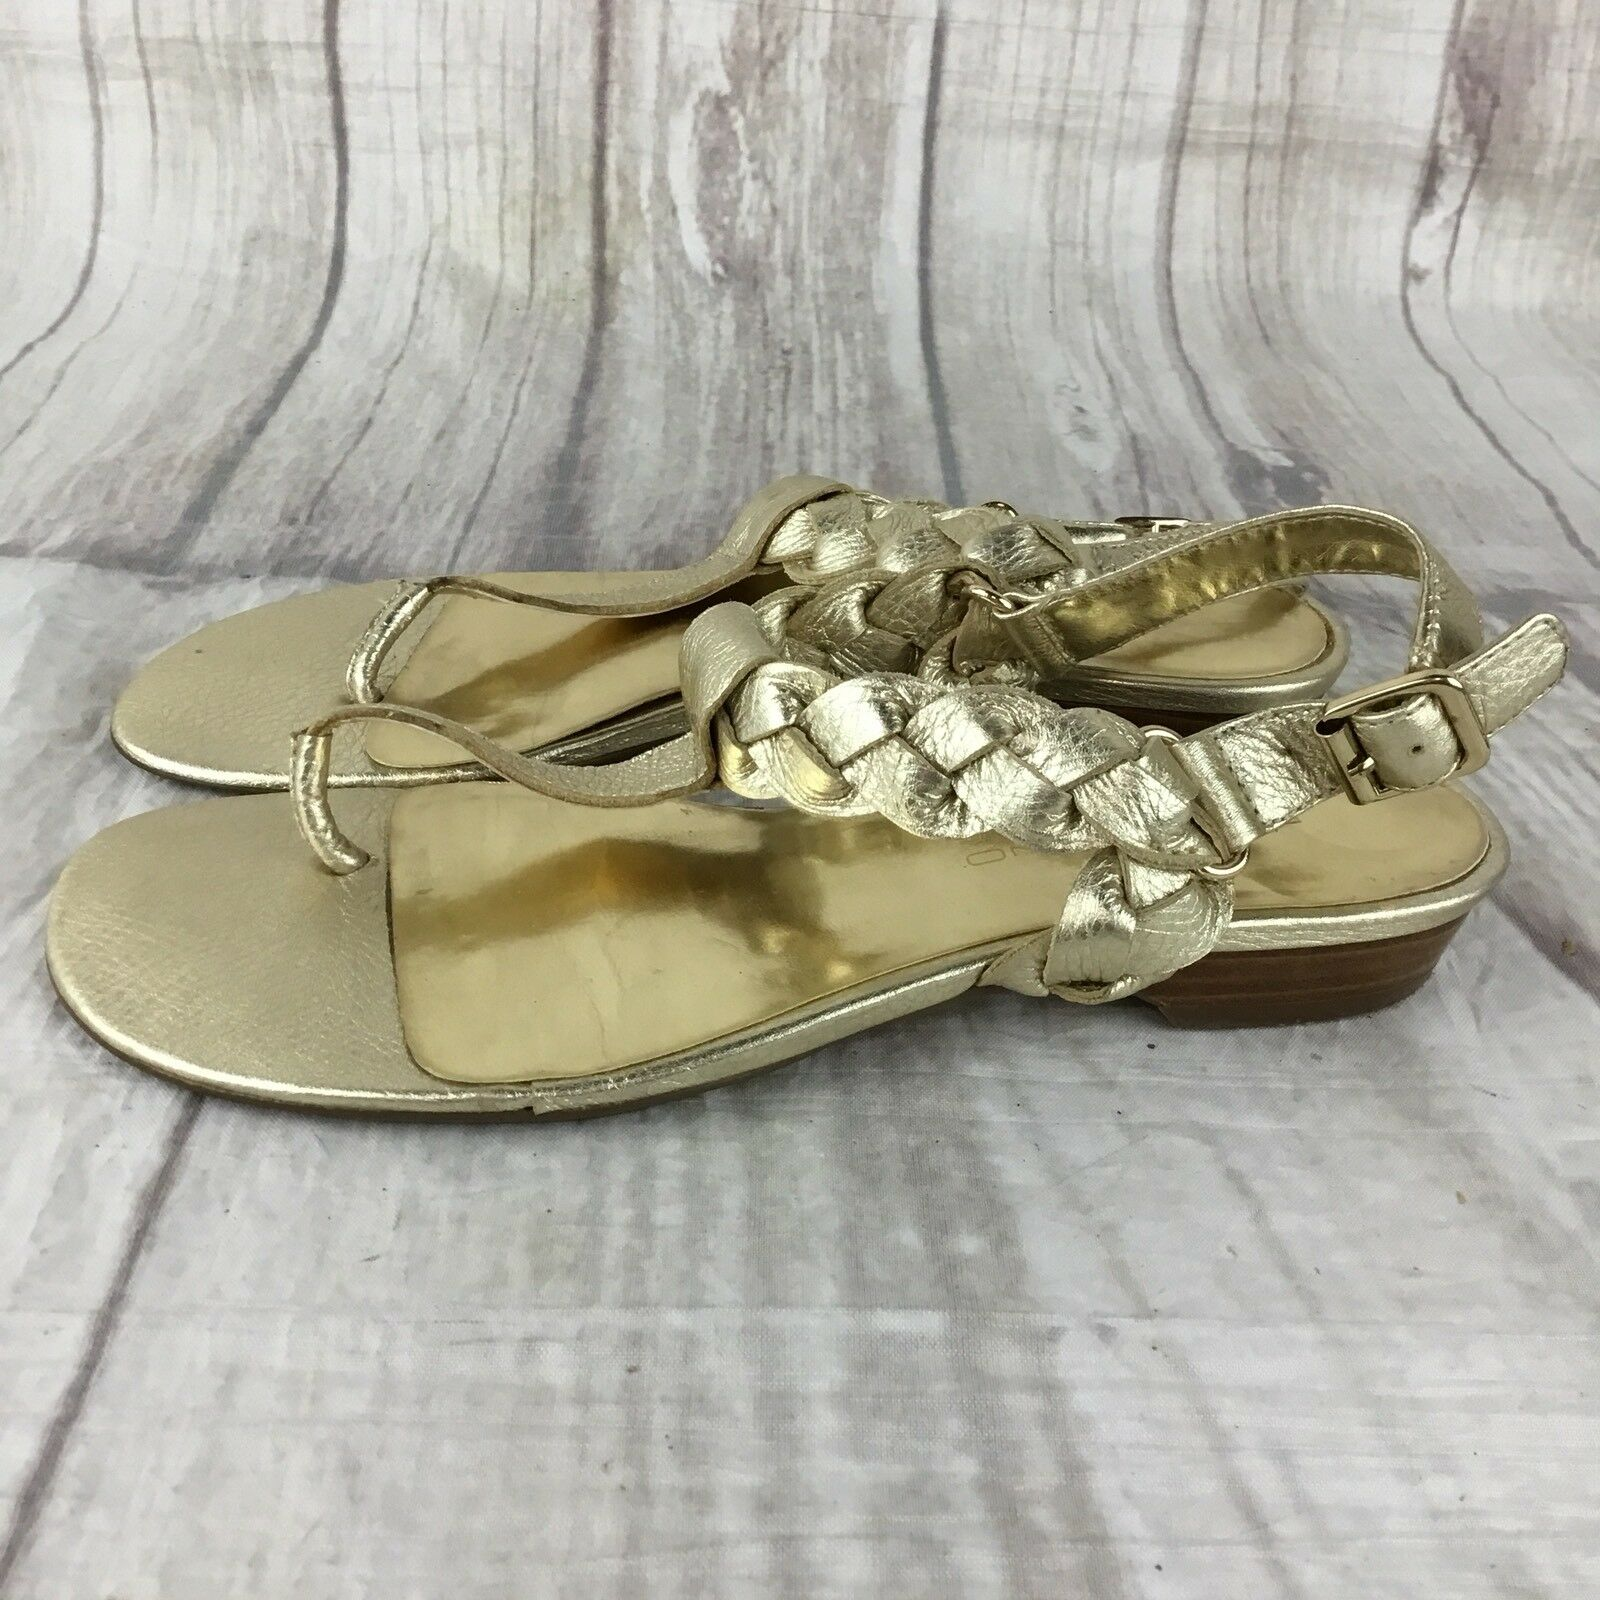 BANDOLINO Sandals Gold Braided Pebbled Leather T Strap Sandals BANDOLINO Stack Heel Size 6.5M a55bd9